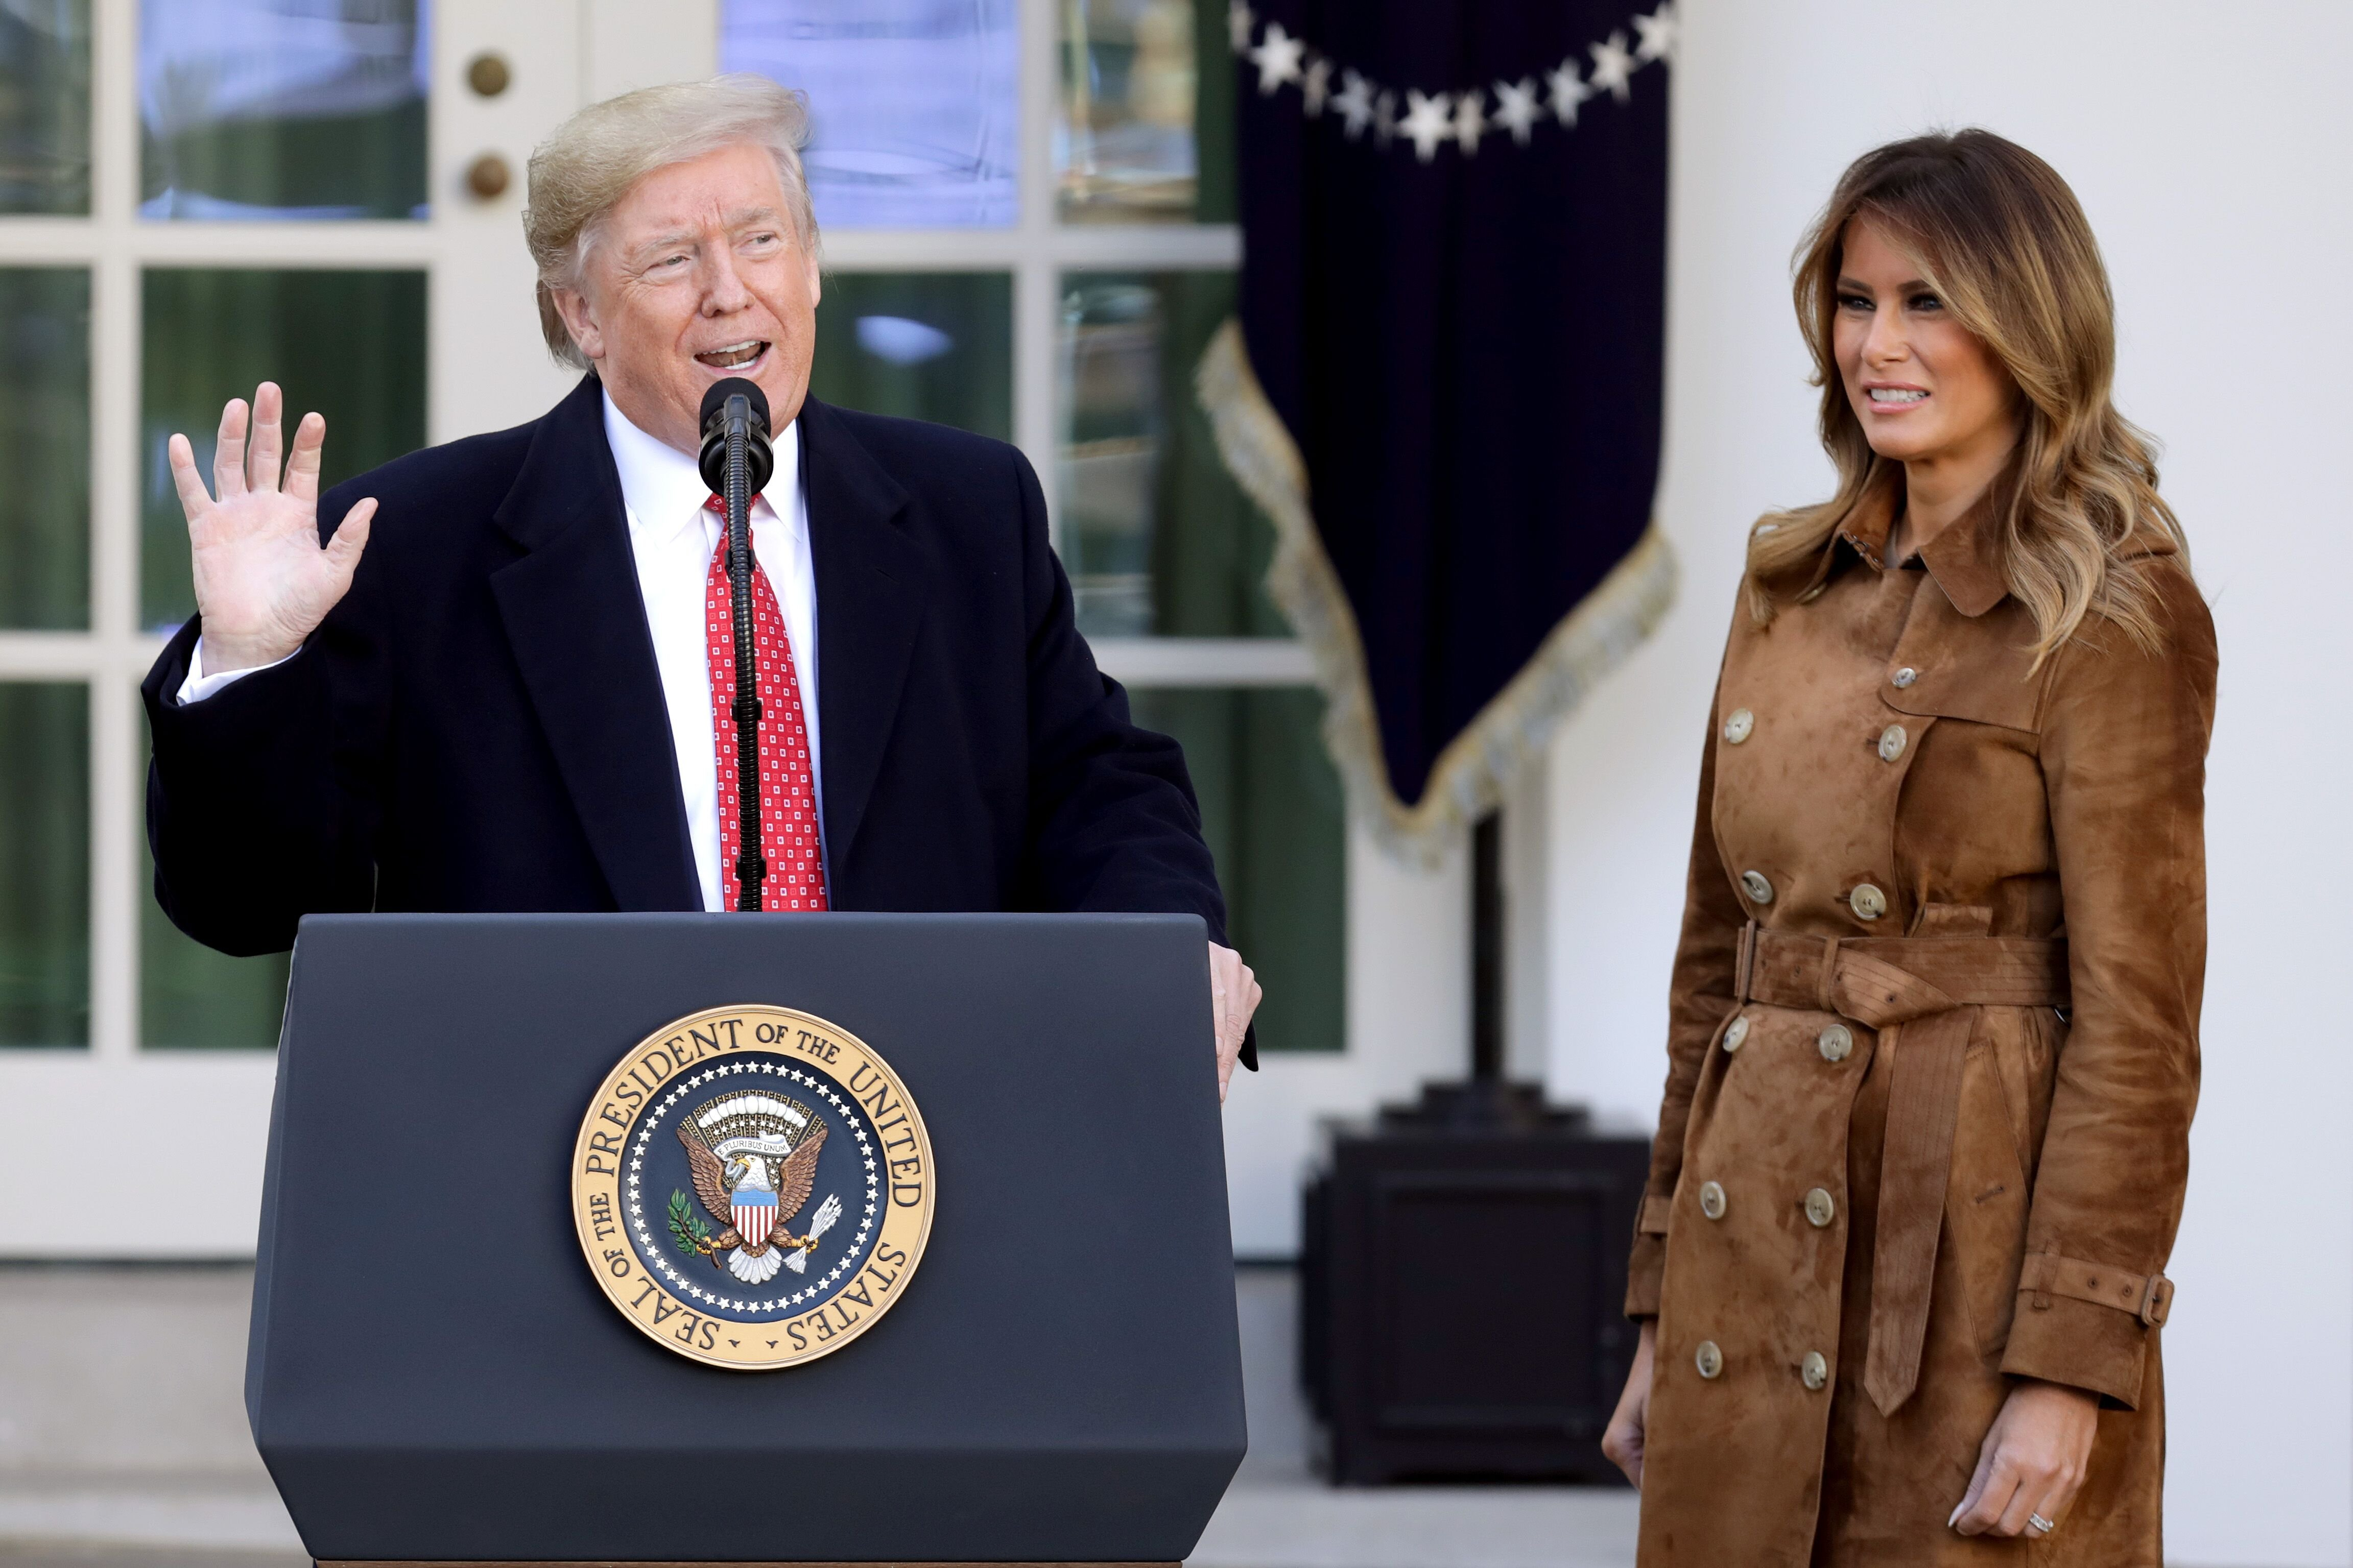 U.S. President Donald Trump delivers remarks before giving a presidential 'pardon' to the National Thanksgiving Turkey 'Butter' during the traditional event with first lady Melania Trump (R) in the Rose Garden of the White House November 26, 2019 in Washington, DC | Photo: Getty Images